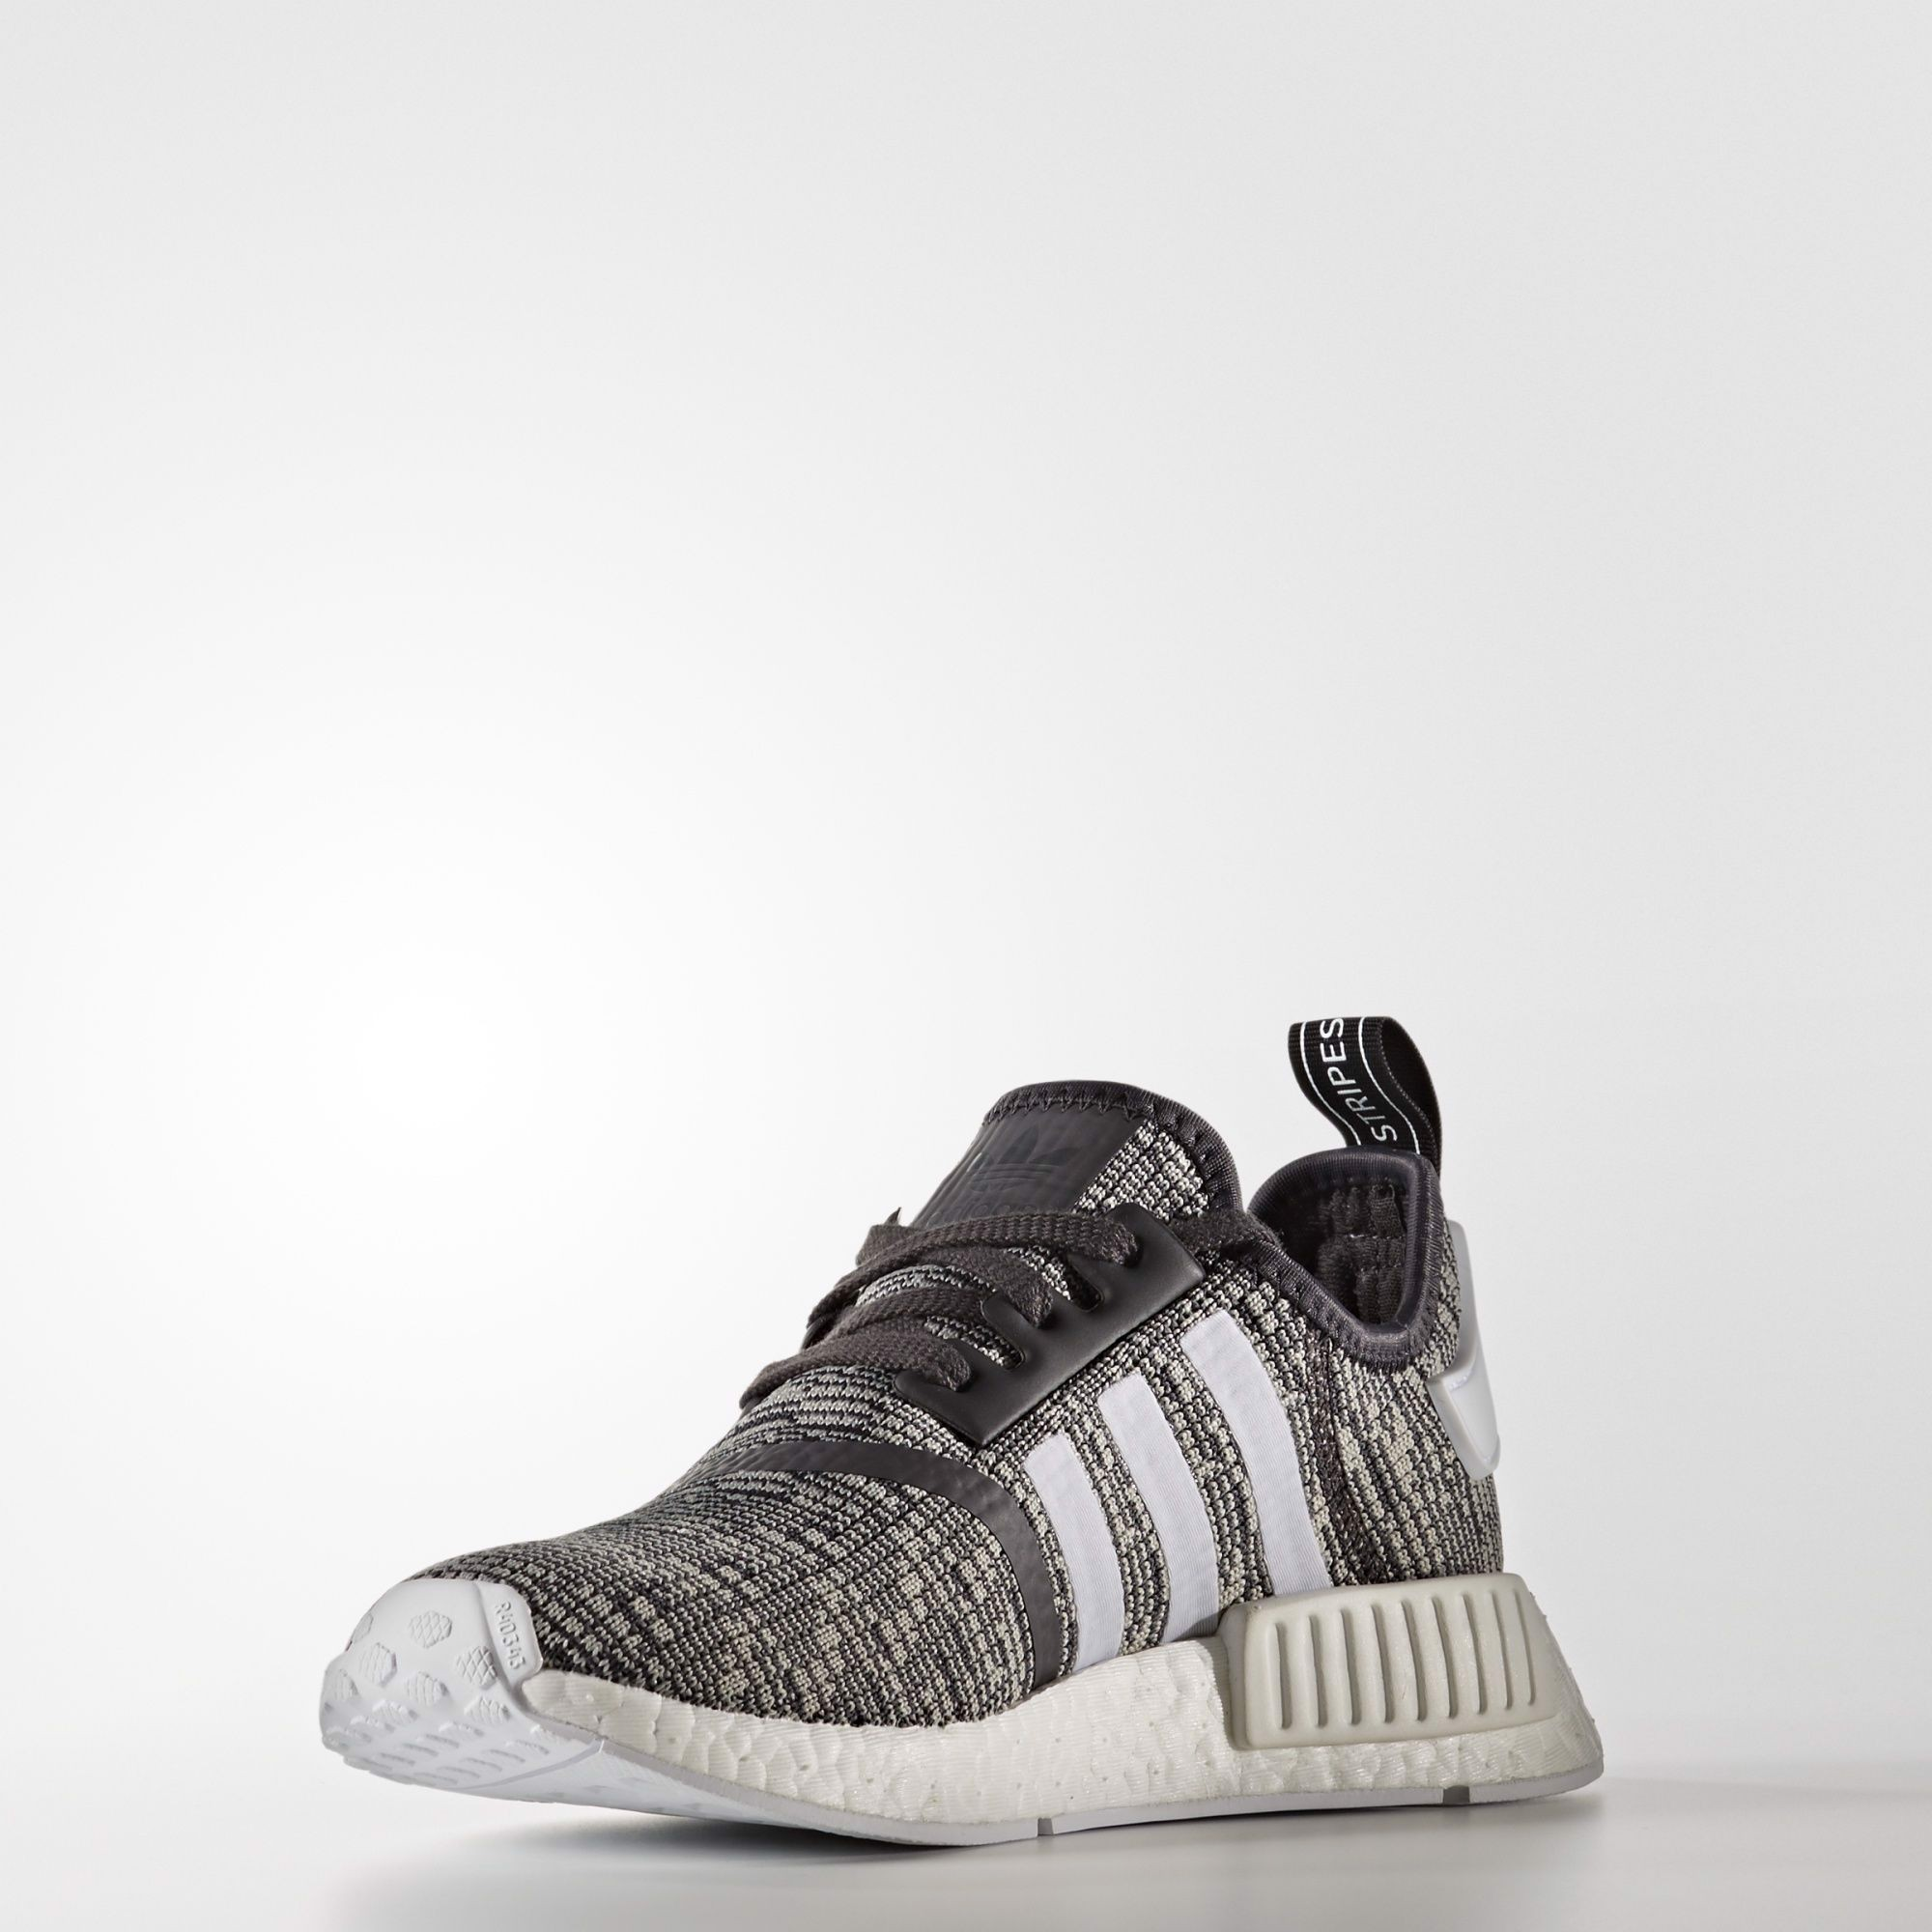 adidas NMD Primeknit 'Midnight Grey'